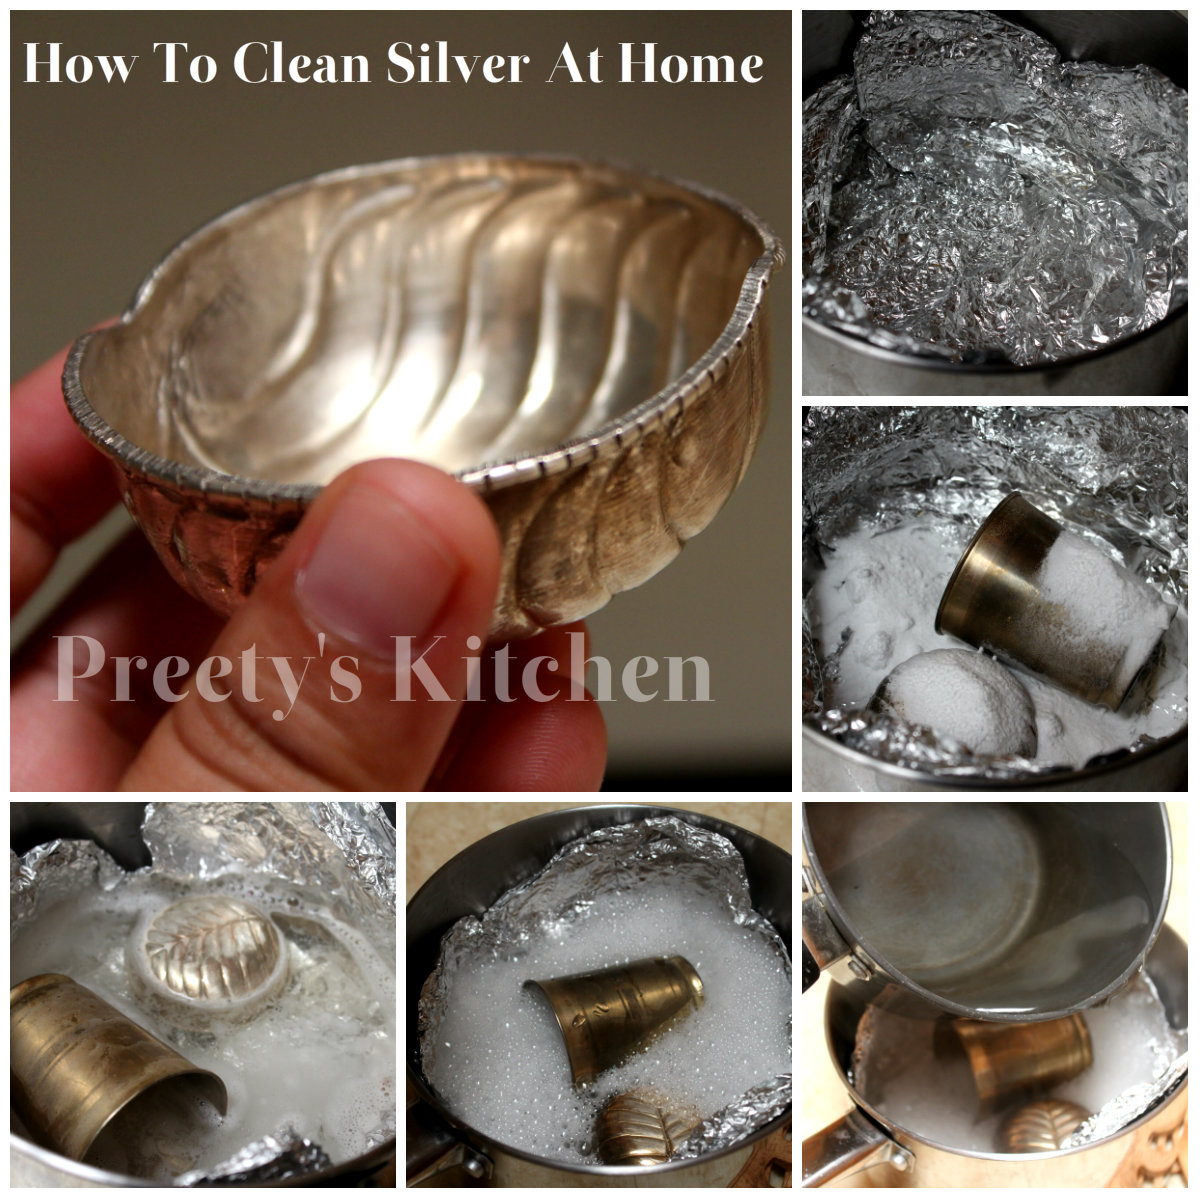 How to Clean Silver with Baking Soda recommend